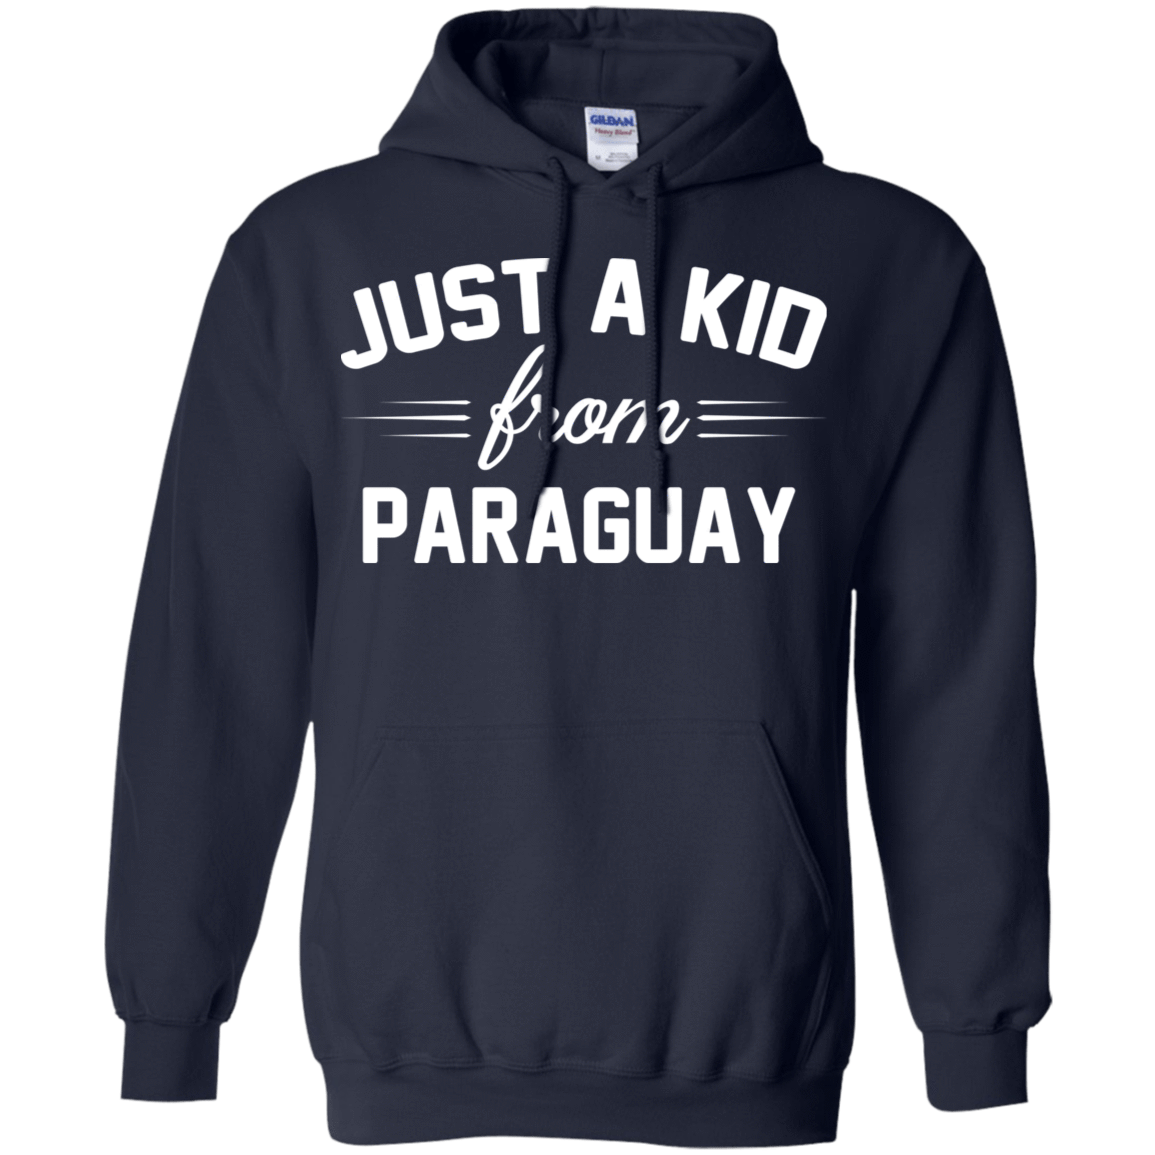 Just a Kid Store | Paraguay T-Shirts, Hoodie, Tank 541-4742-72091580-23135 - Tee Ript